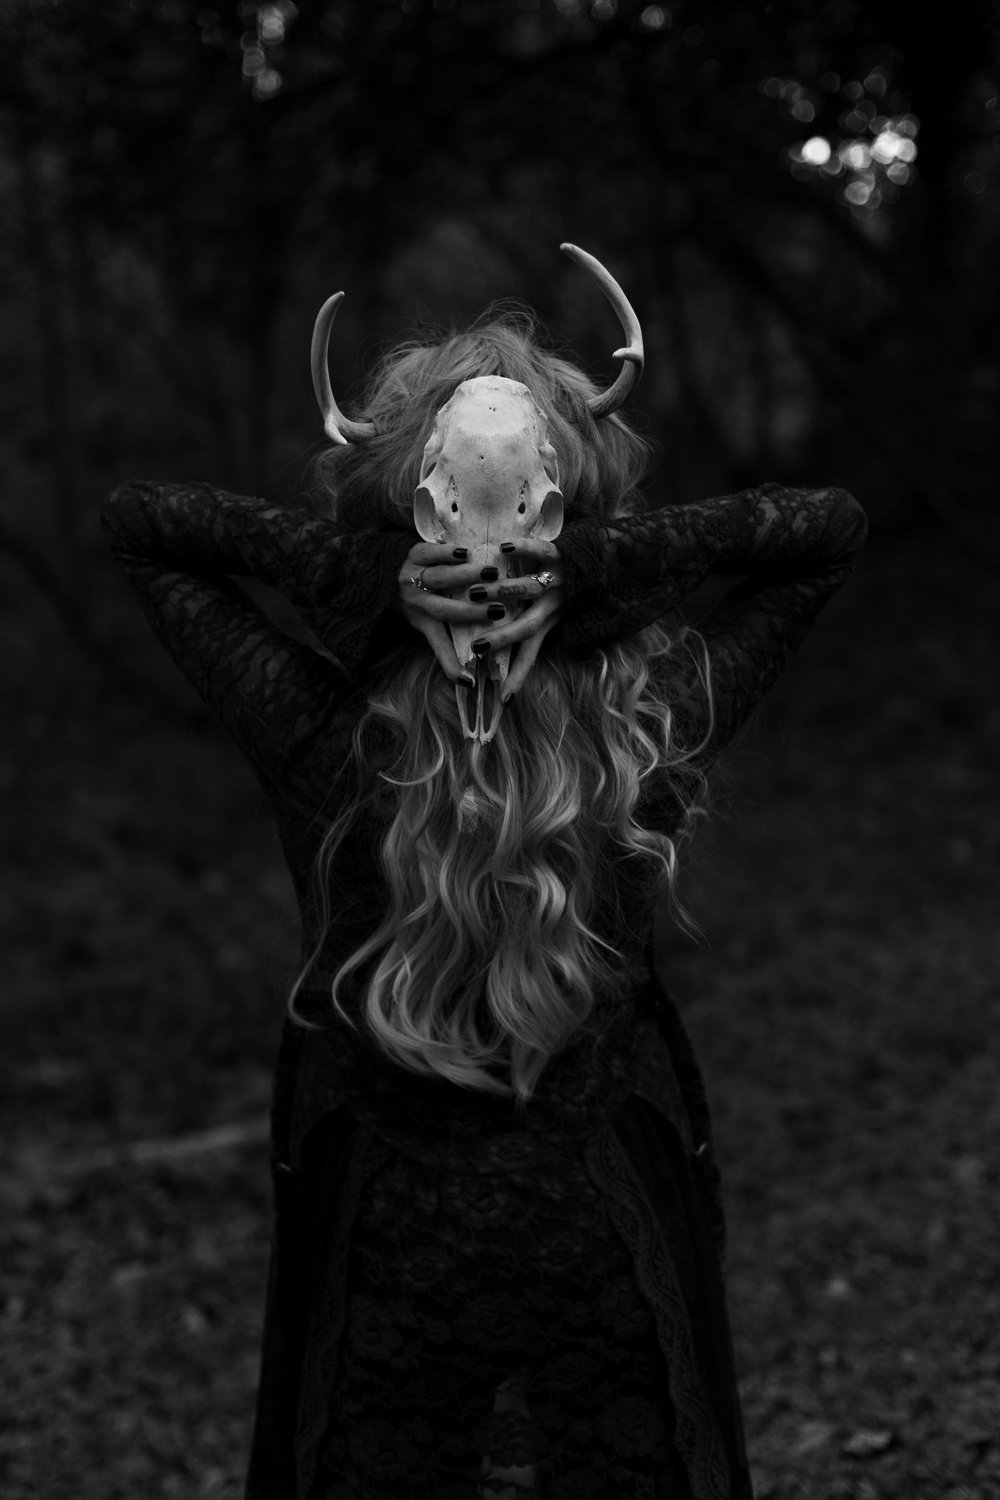 Woman with skull and antlers in Ridgewood, New Jersey for Halloween. Photo by Laughing Heart Photography.